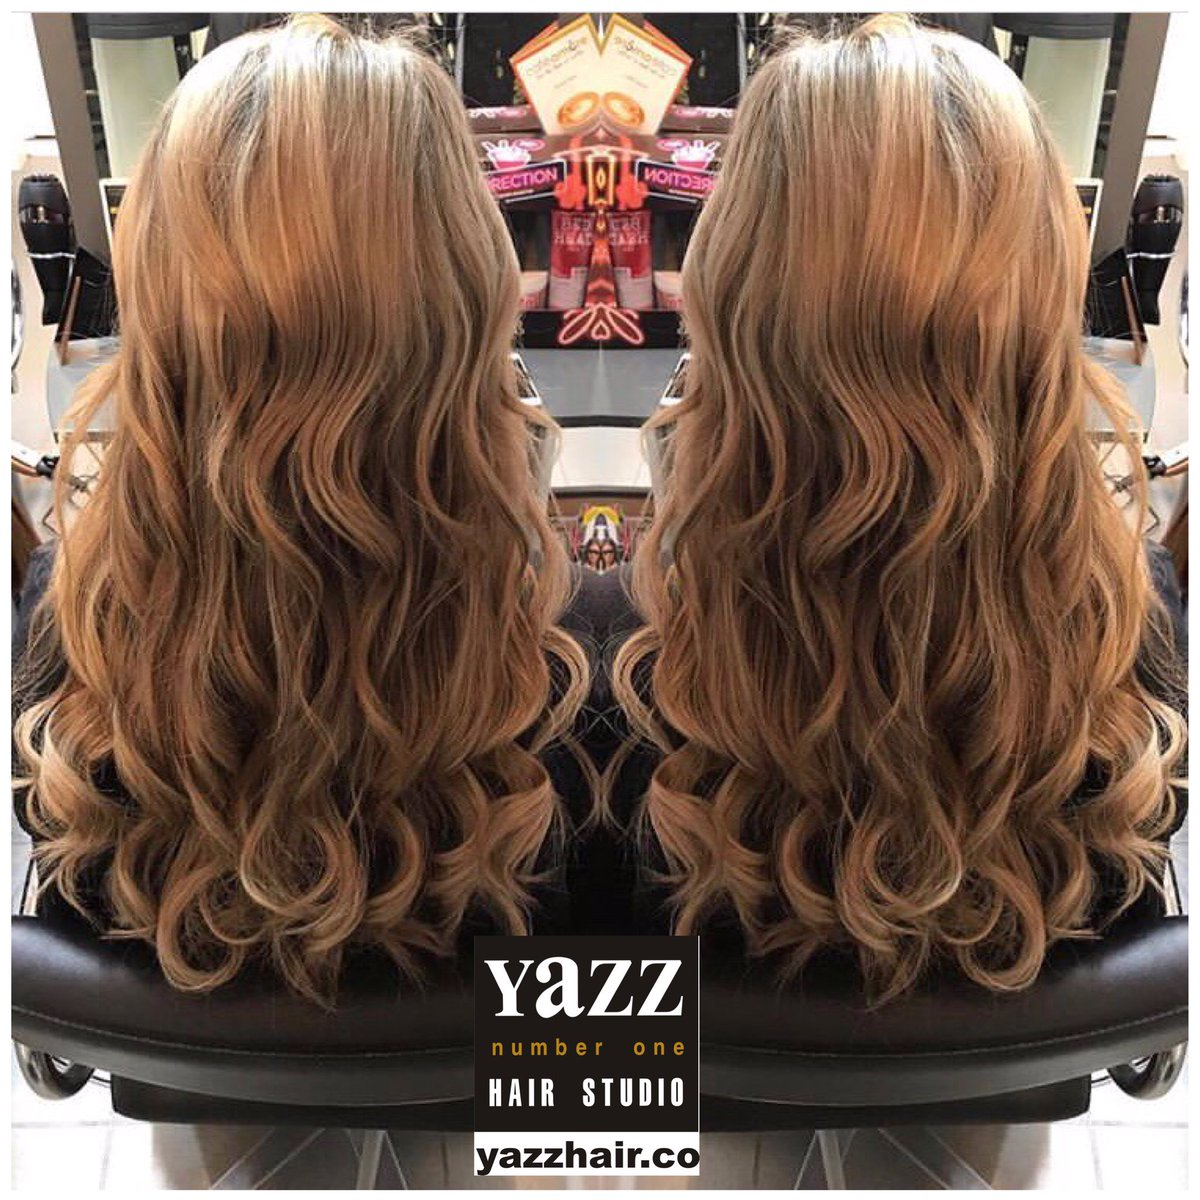 ⚫️HAIR EXTENSIONS⚫️ Would you like longer thicker hair?  Look at Annabelle's great work done today!  For a complimentary consultation with Annabellle Harpin our #GreatLengths Specialist call: Yeadon 0113 3910888 #greatlengthsuk #coldfusionhairextensions #yazzhair